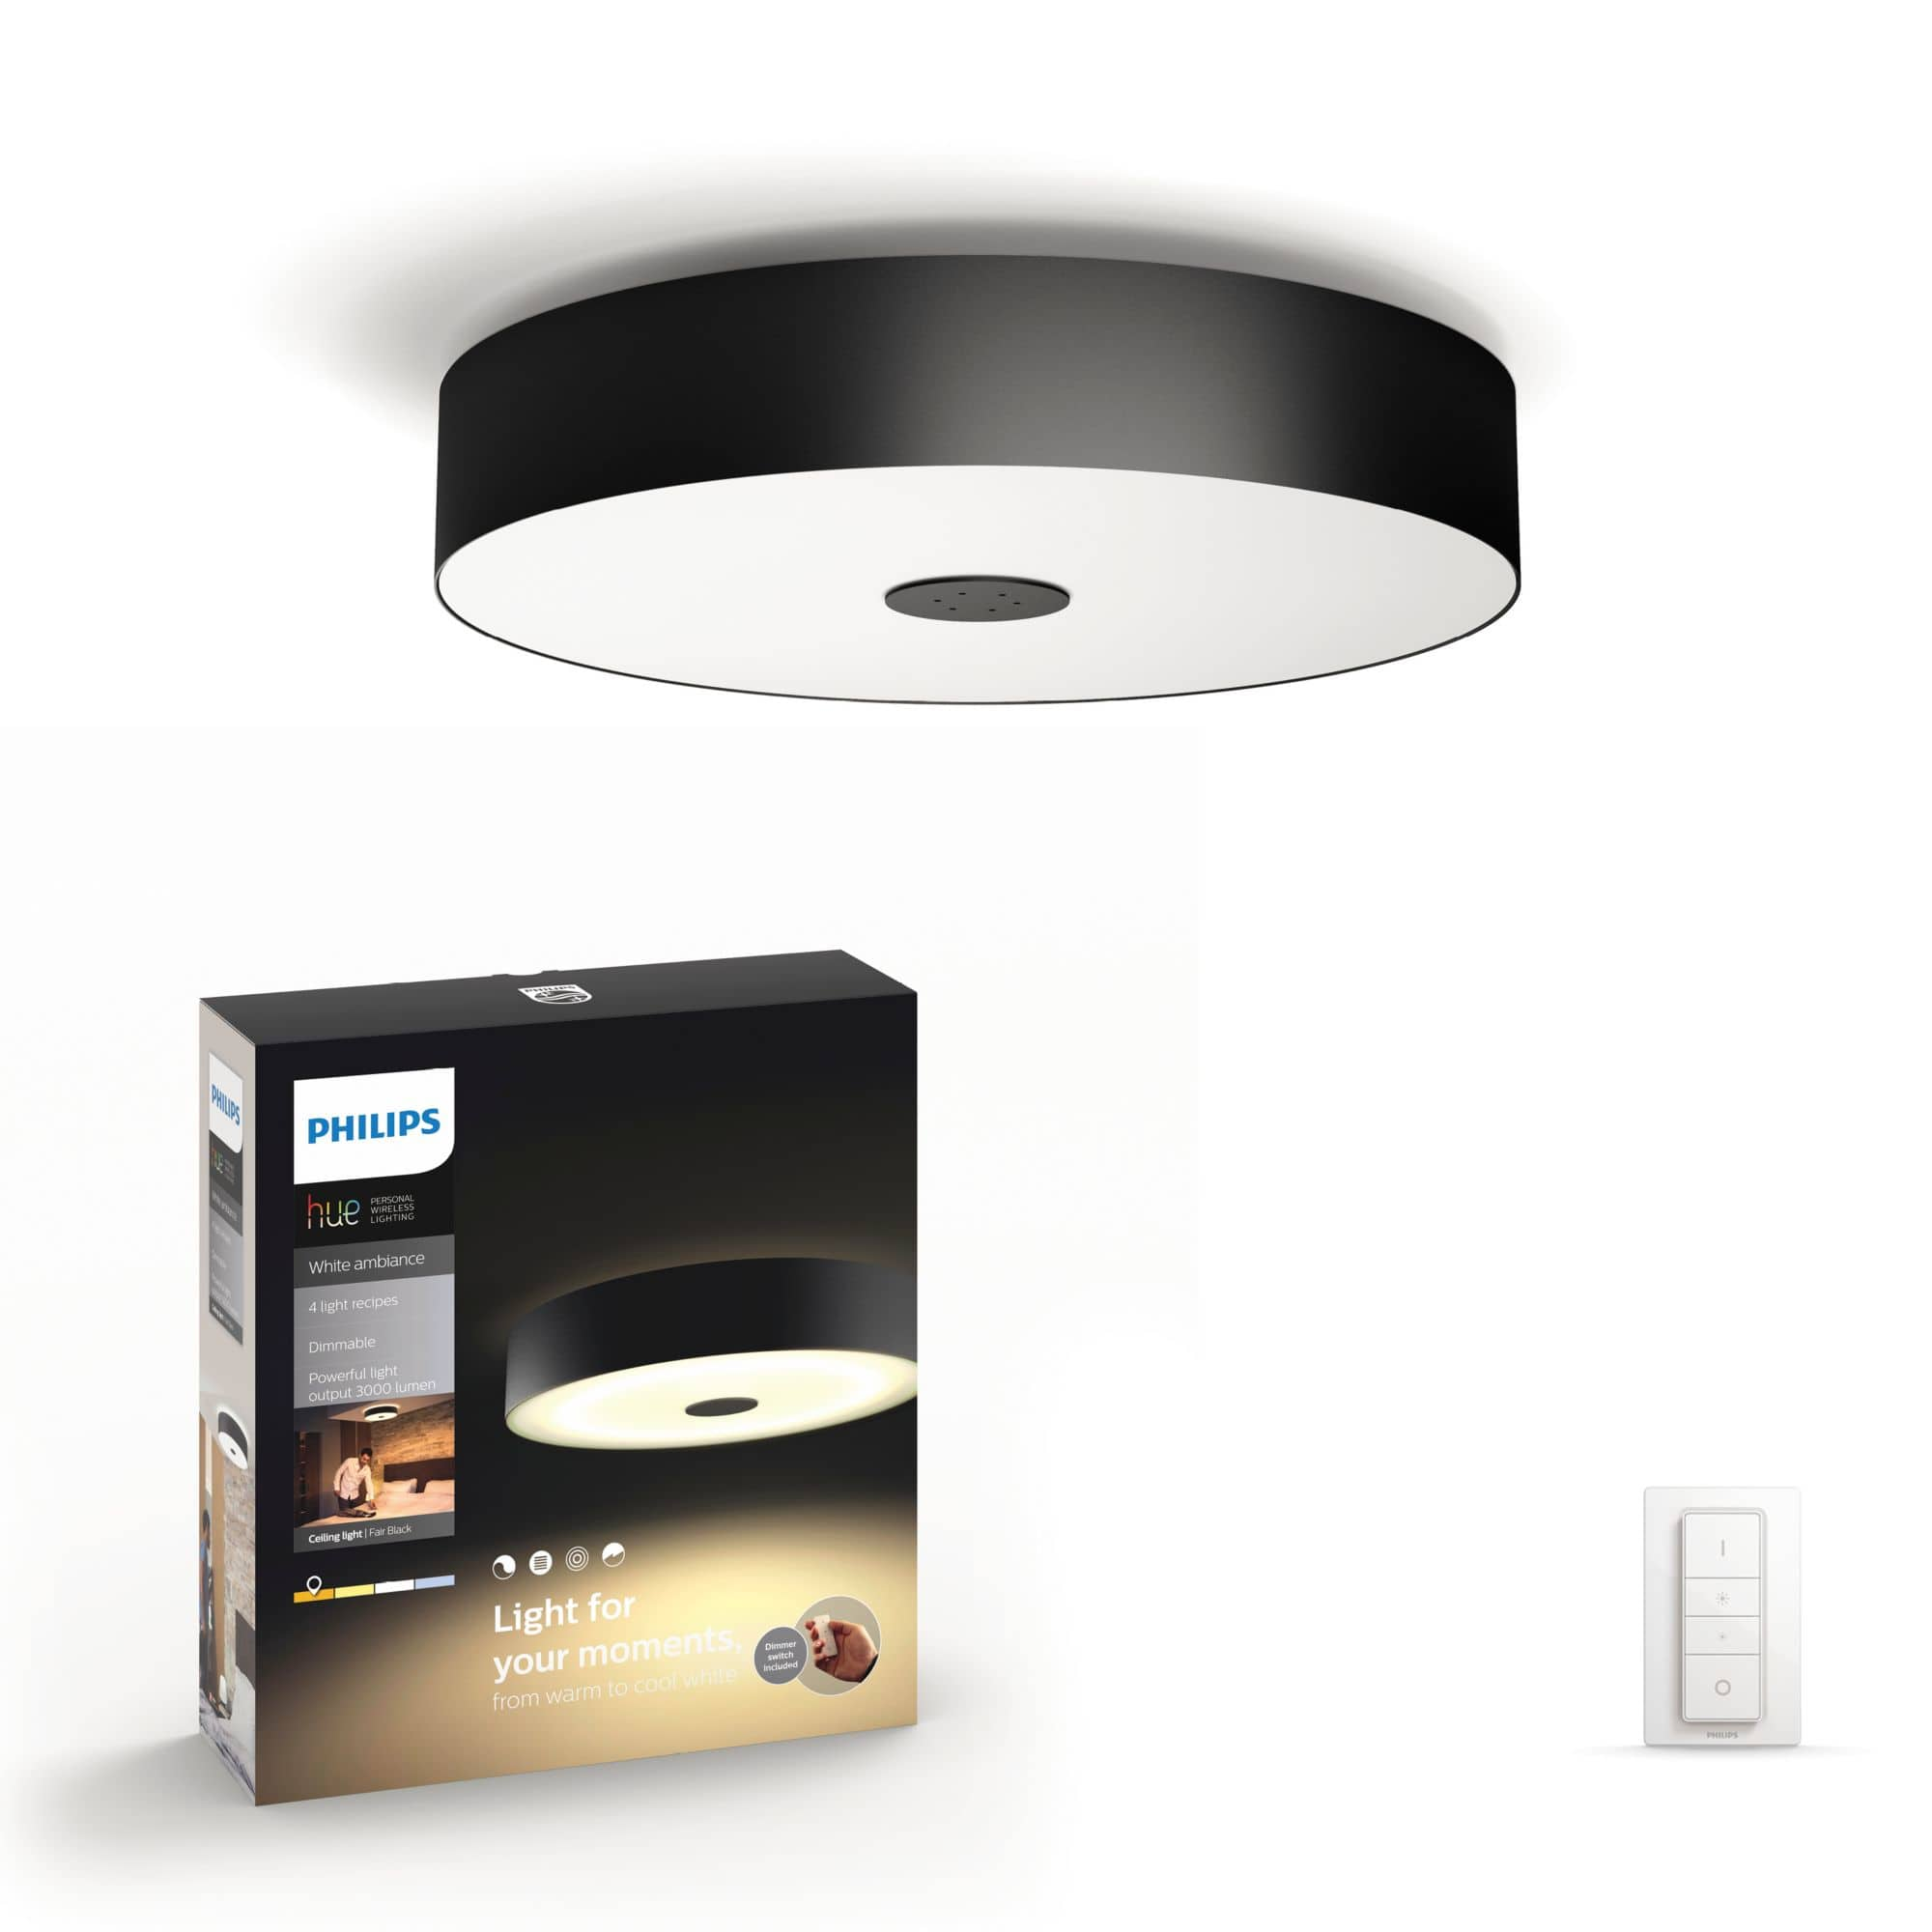 Philips by Signify 4034030P7 Hair Hue White Ambiance-Deckenleuchte LED 39W dimmbar für 199,99 Euro